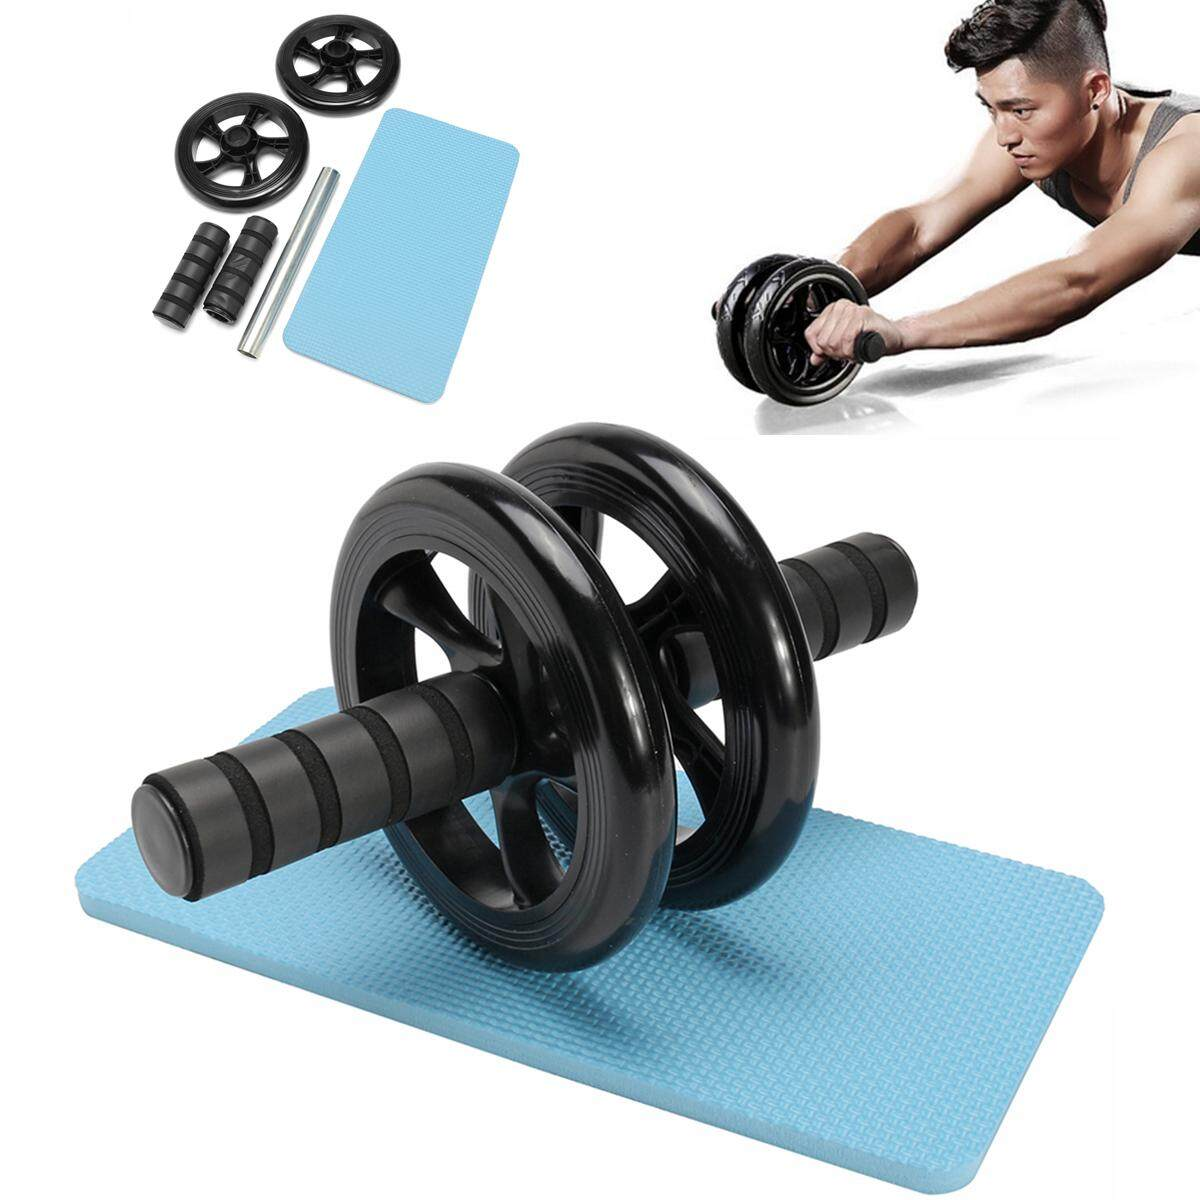 Low Cost Abdominal Exercise Roller W Knee Pad Mat Abs Workout Fitness Dual Wheel Gym Tool Intl